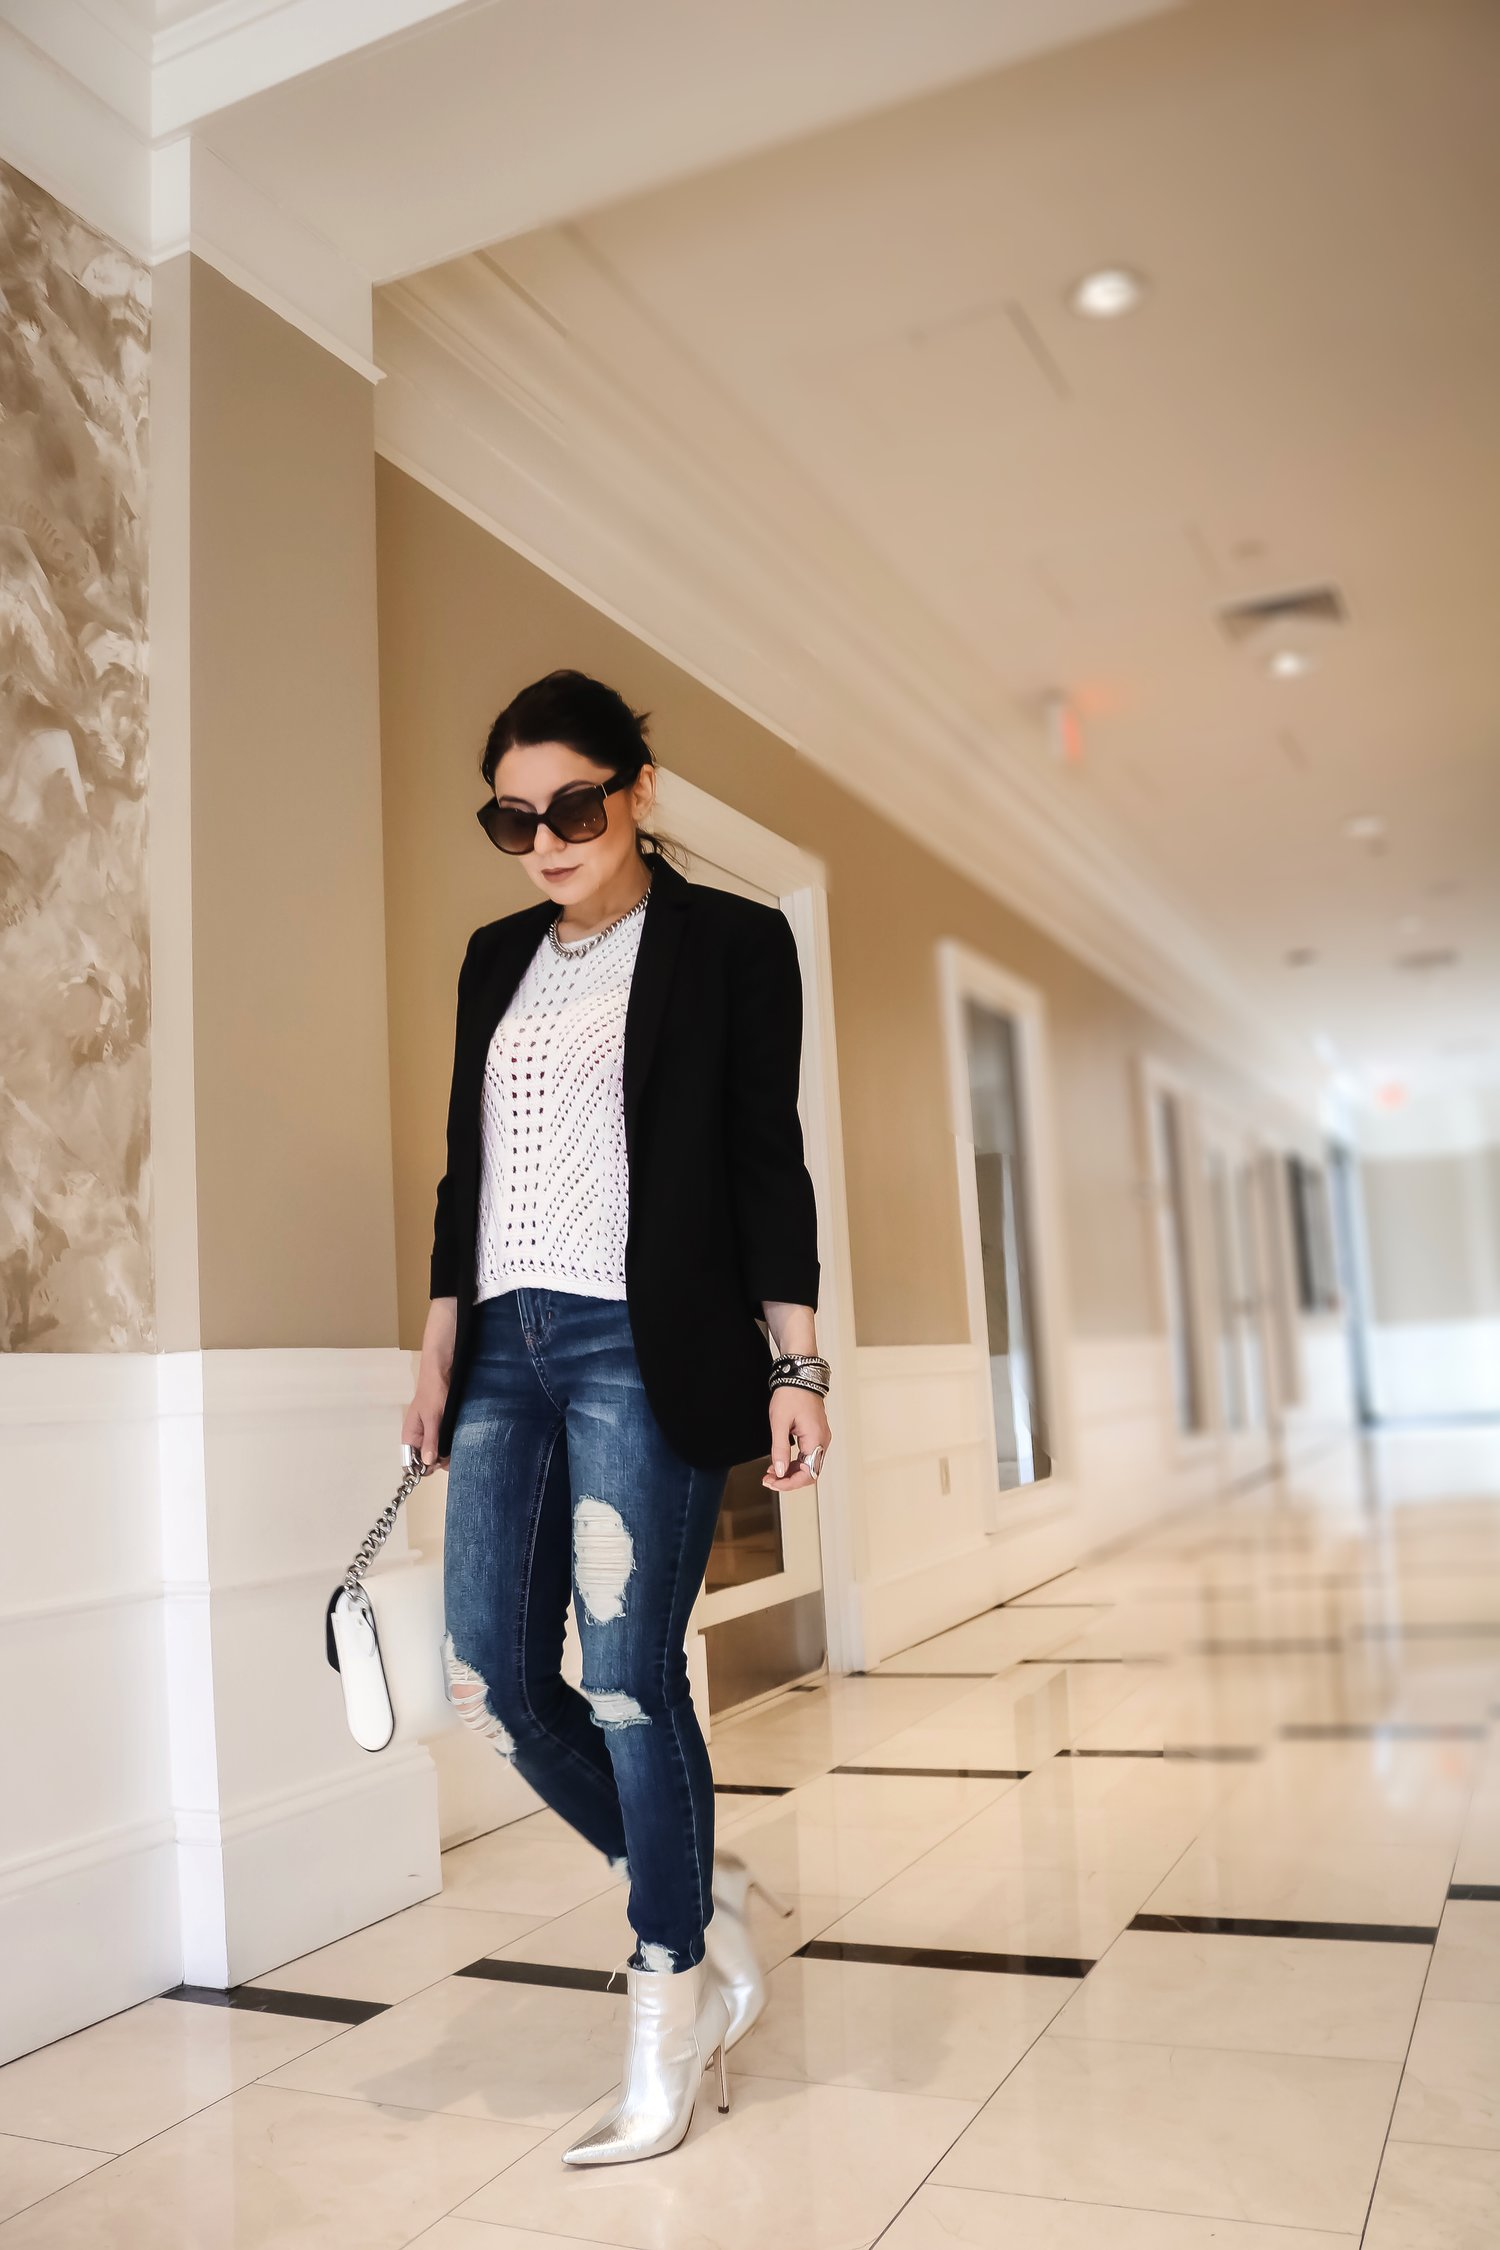 Daytime-streetstyle-silver-boots